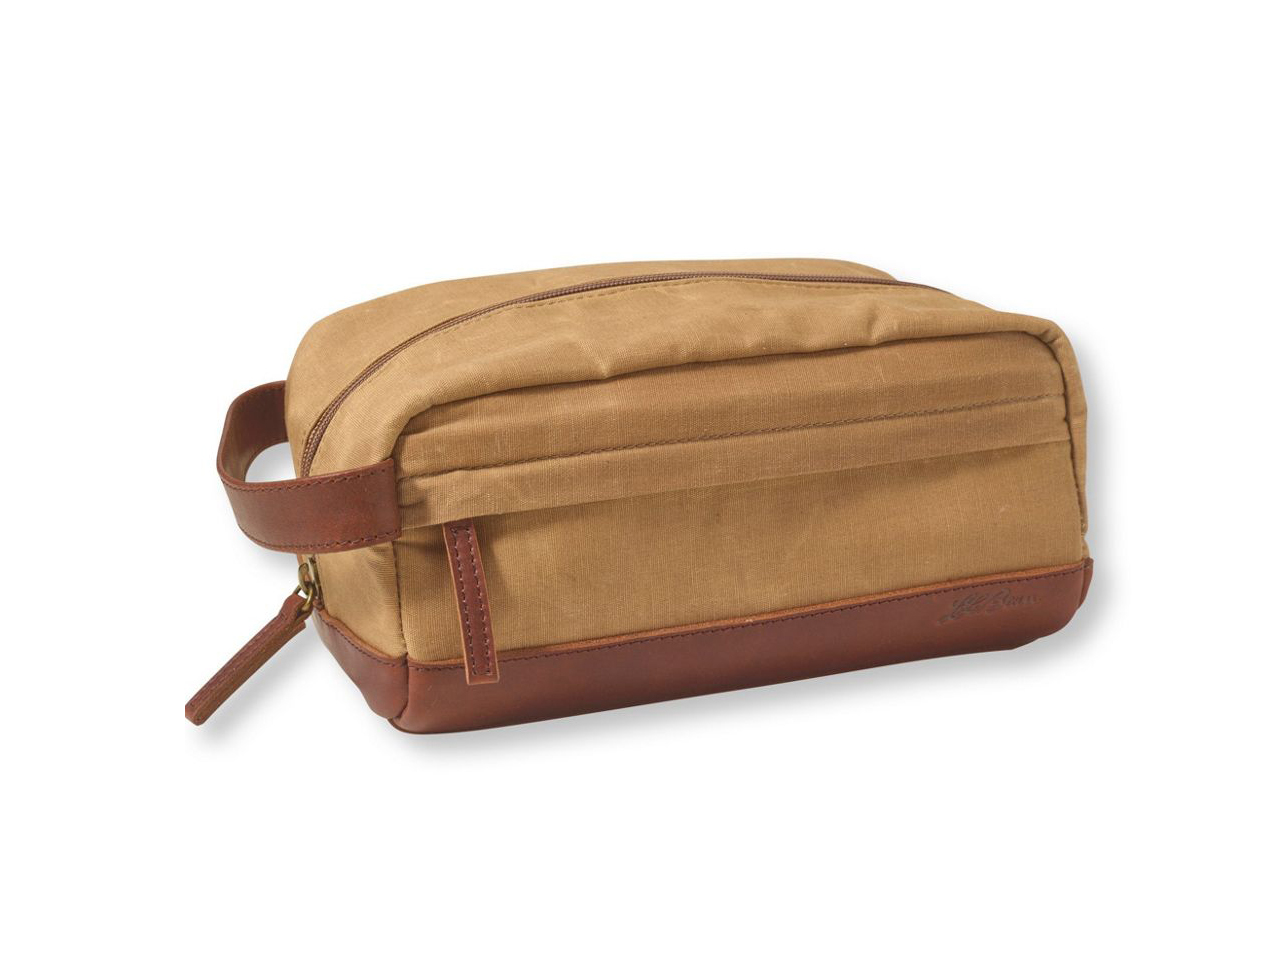 LL Bean Heritage Waxed-Canvas Toiletry Kit